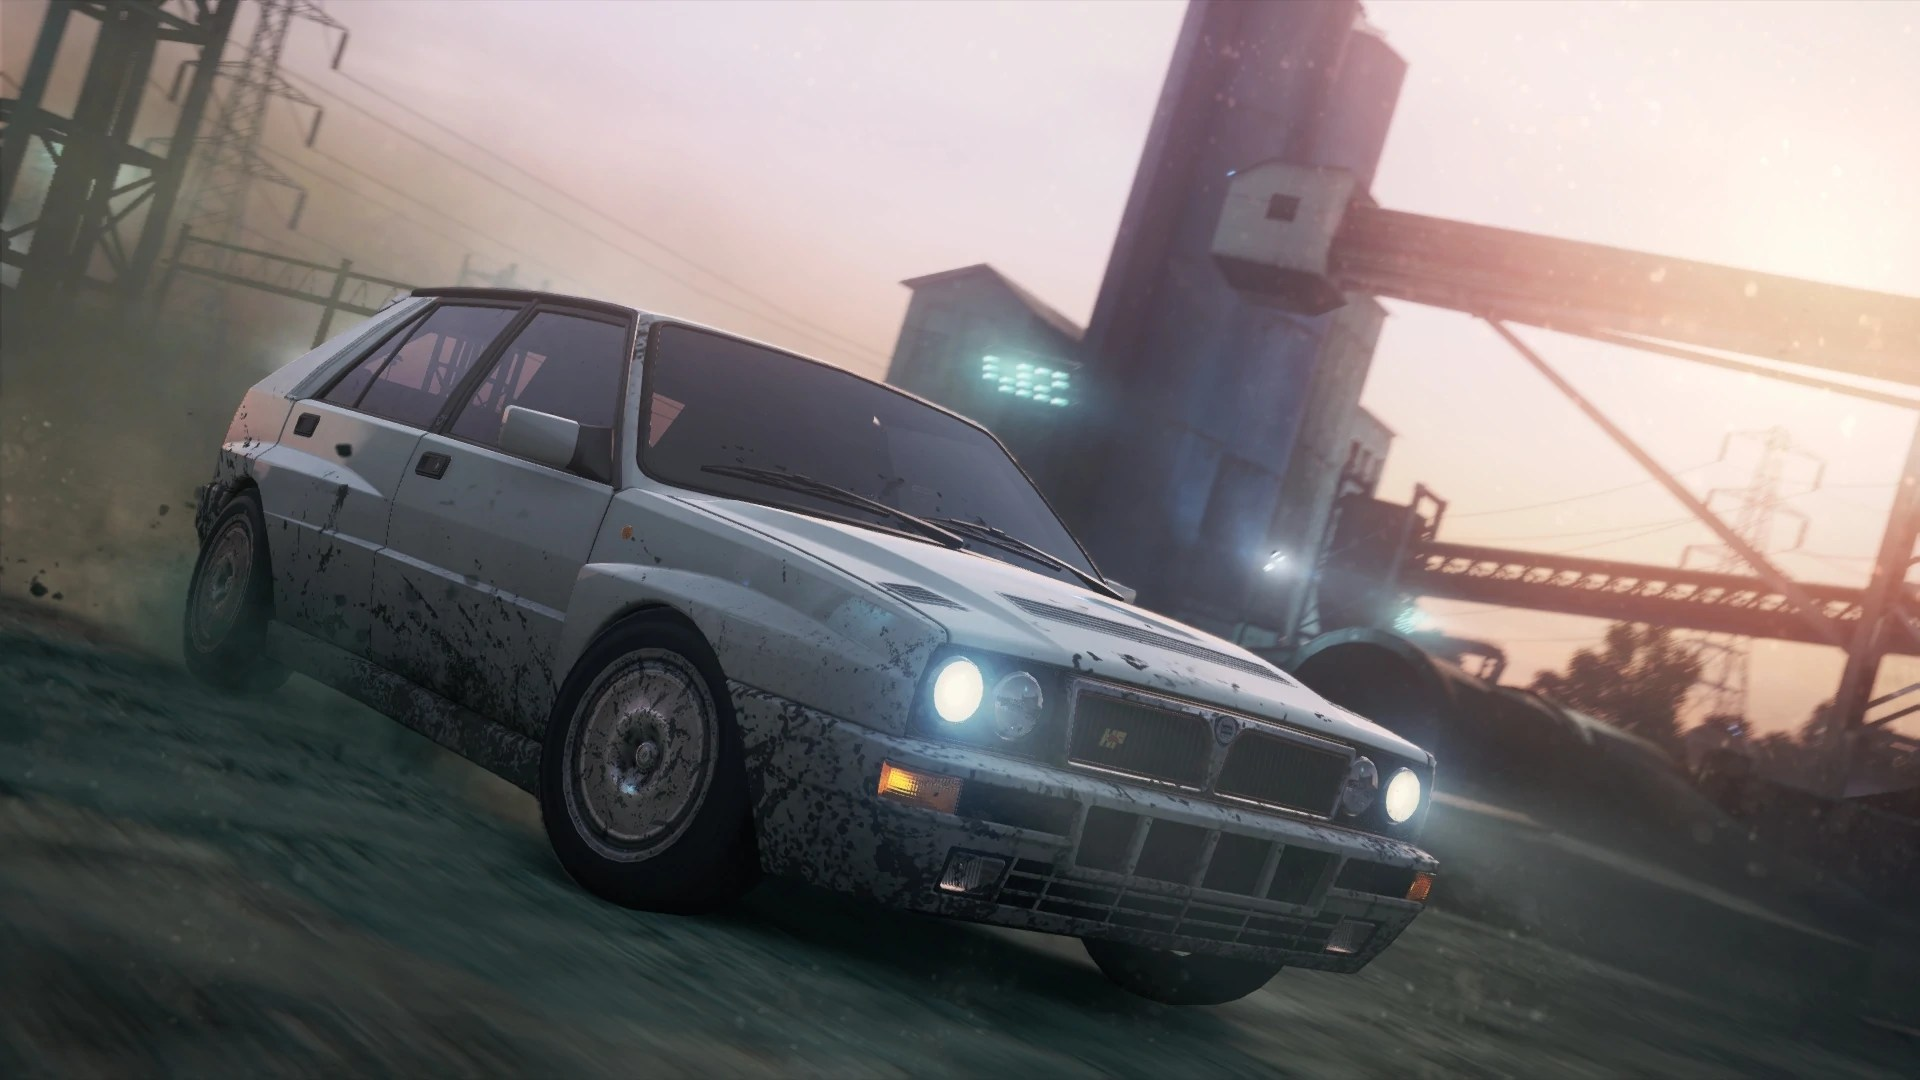 Nfs Most Wanted 2012 Cars Wallpapers Lancia Delta Hf Integrale Evoluzione Ii At The Need For